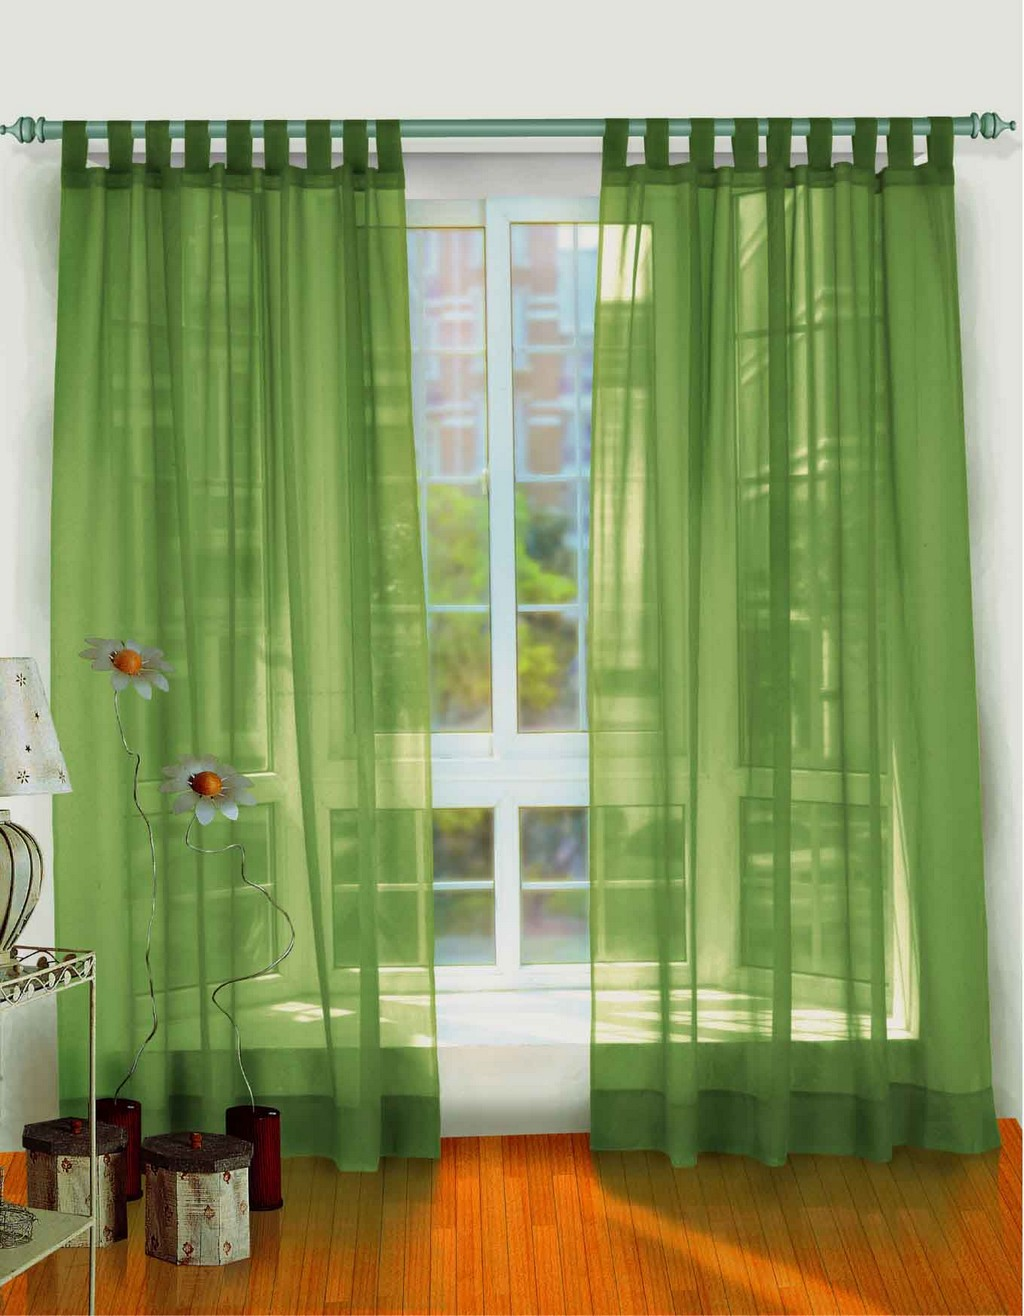 BJ'S Country Charm - Homestead Curtains, Plaid Curtains, Primitive